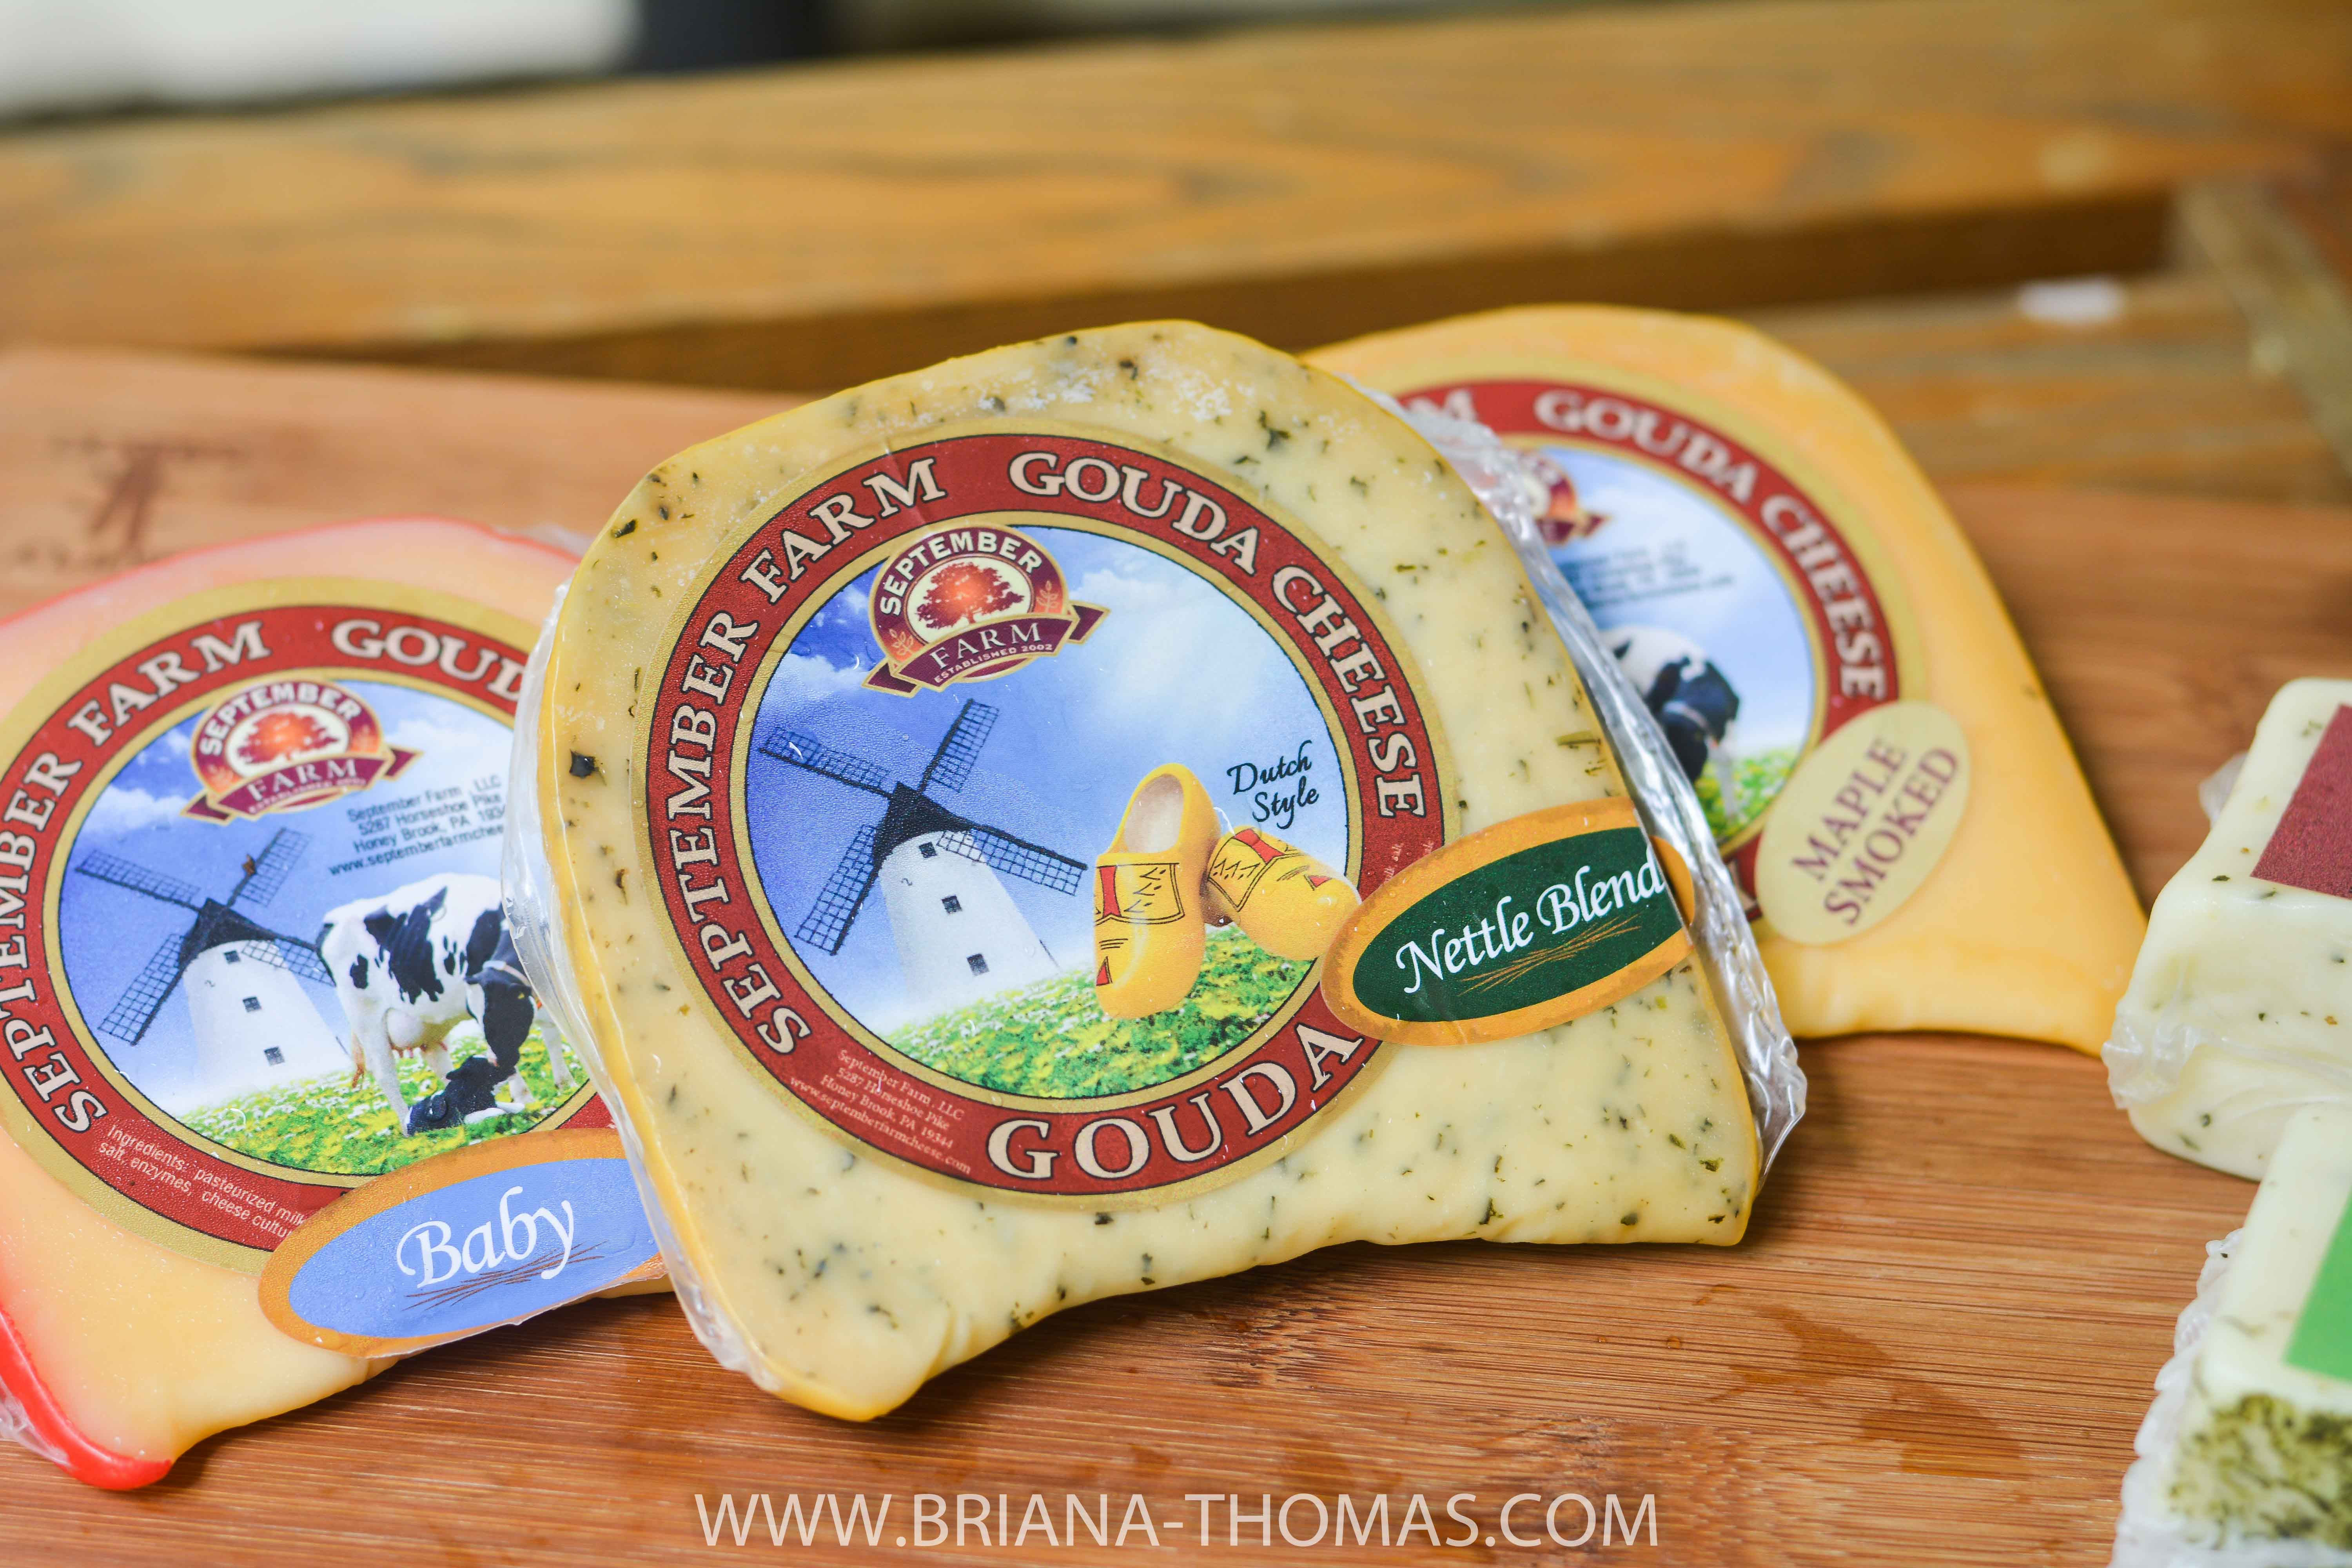 3 different types of handcrafted Gouda cheese from September Farm in Honey Brook, PA